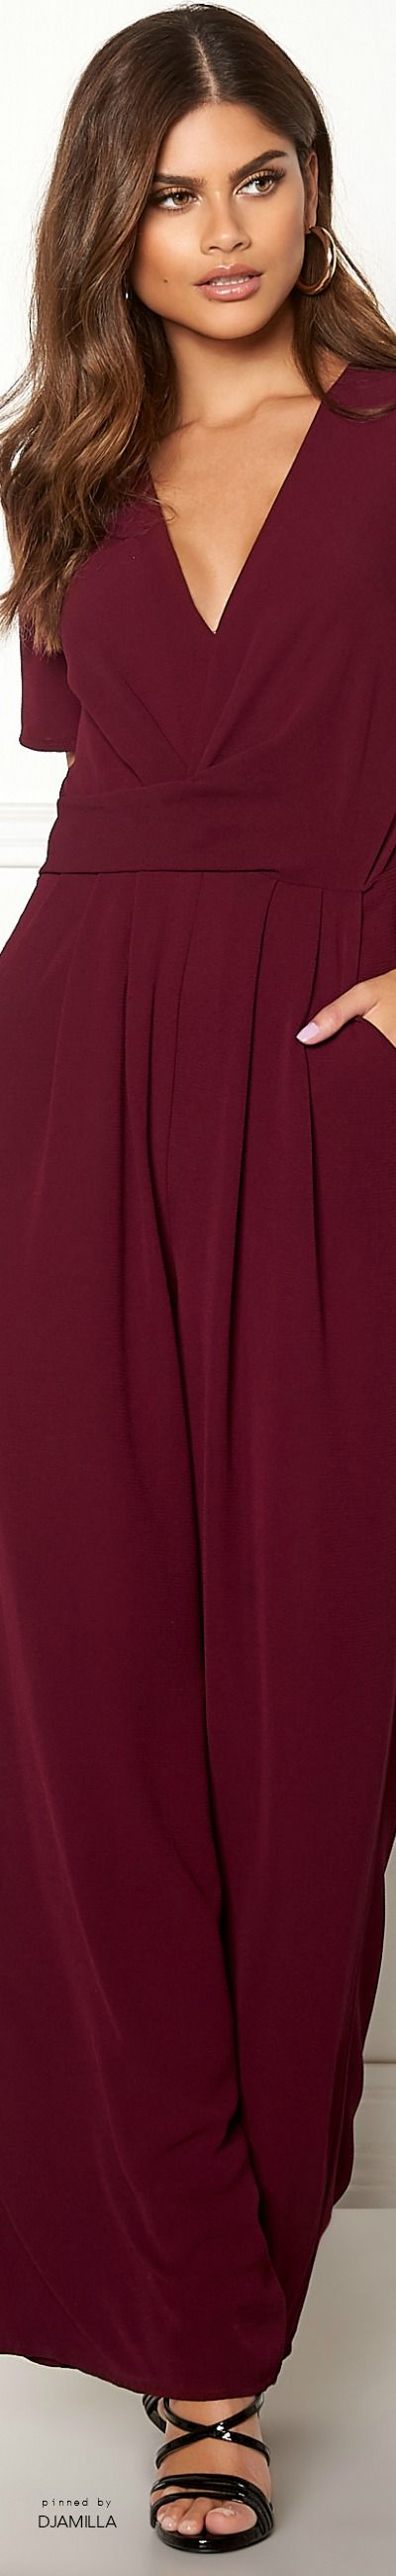 Make Way Harlee Jumpsuit Wine Red Fashion Shades Of Burgundy Glamour